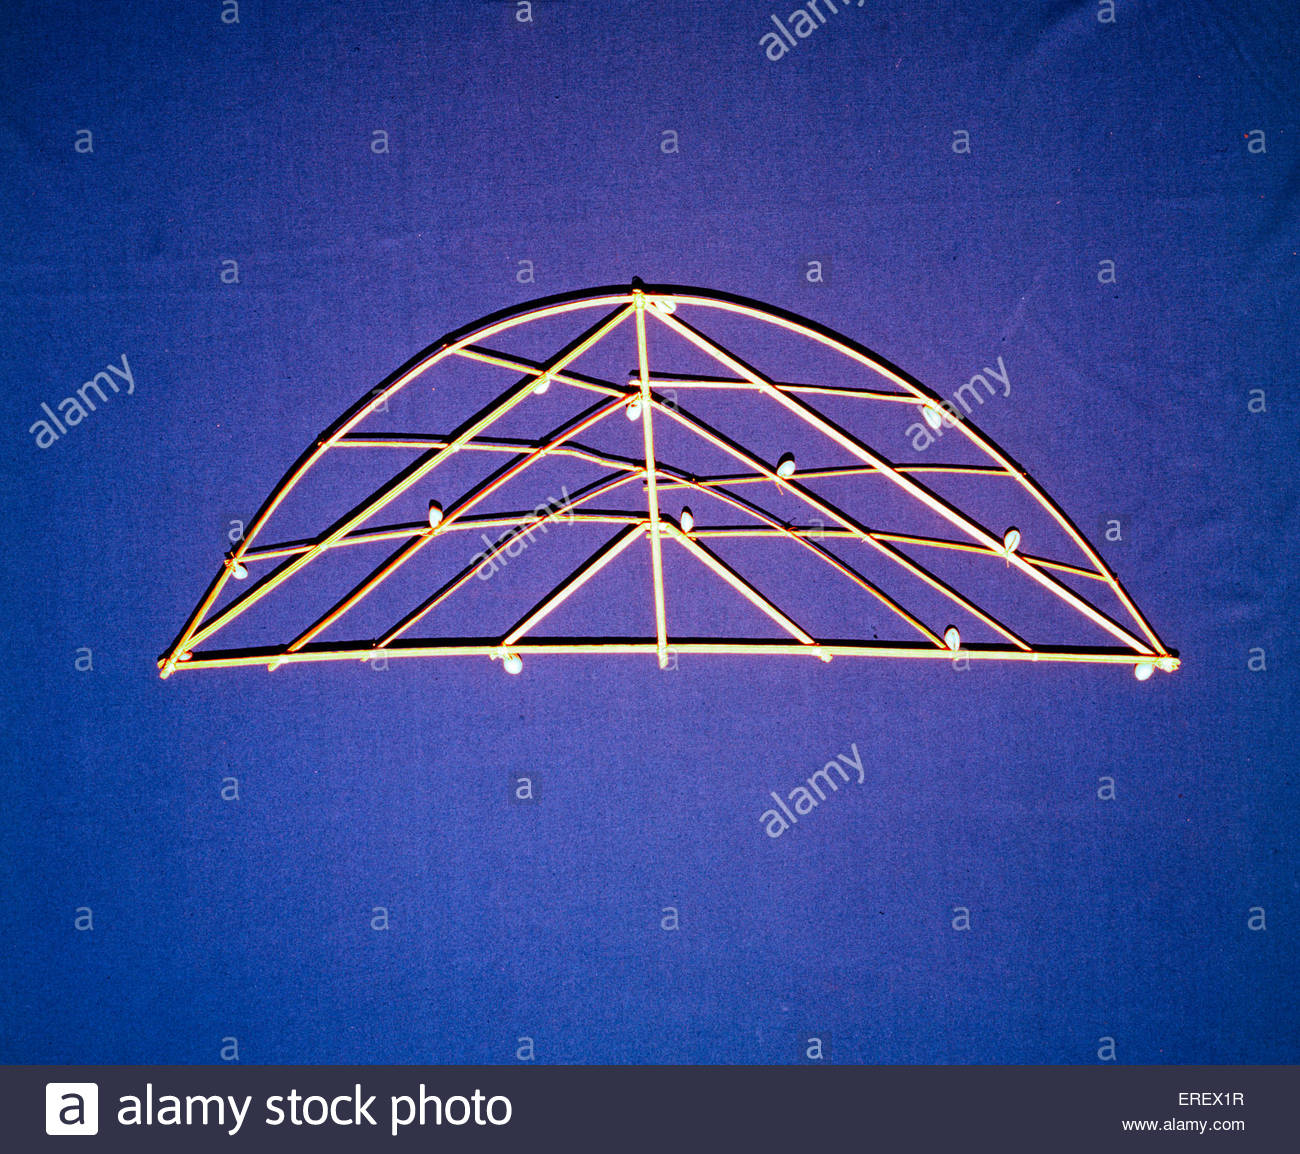 Polynesian Stick Chart  - navigation training device.  Charts were used to demonstrate and map the relationship - Stock Image